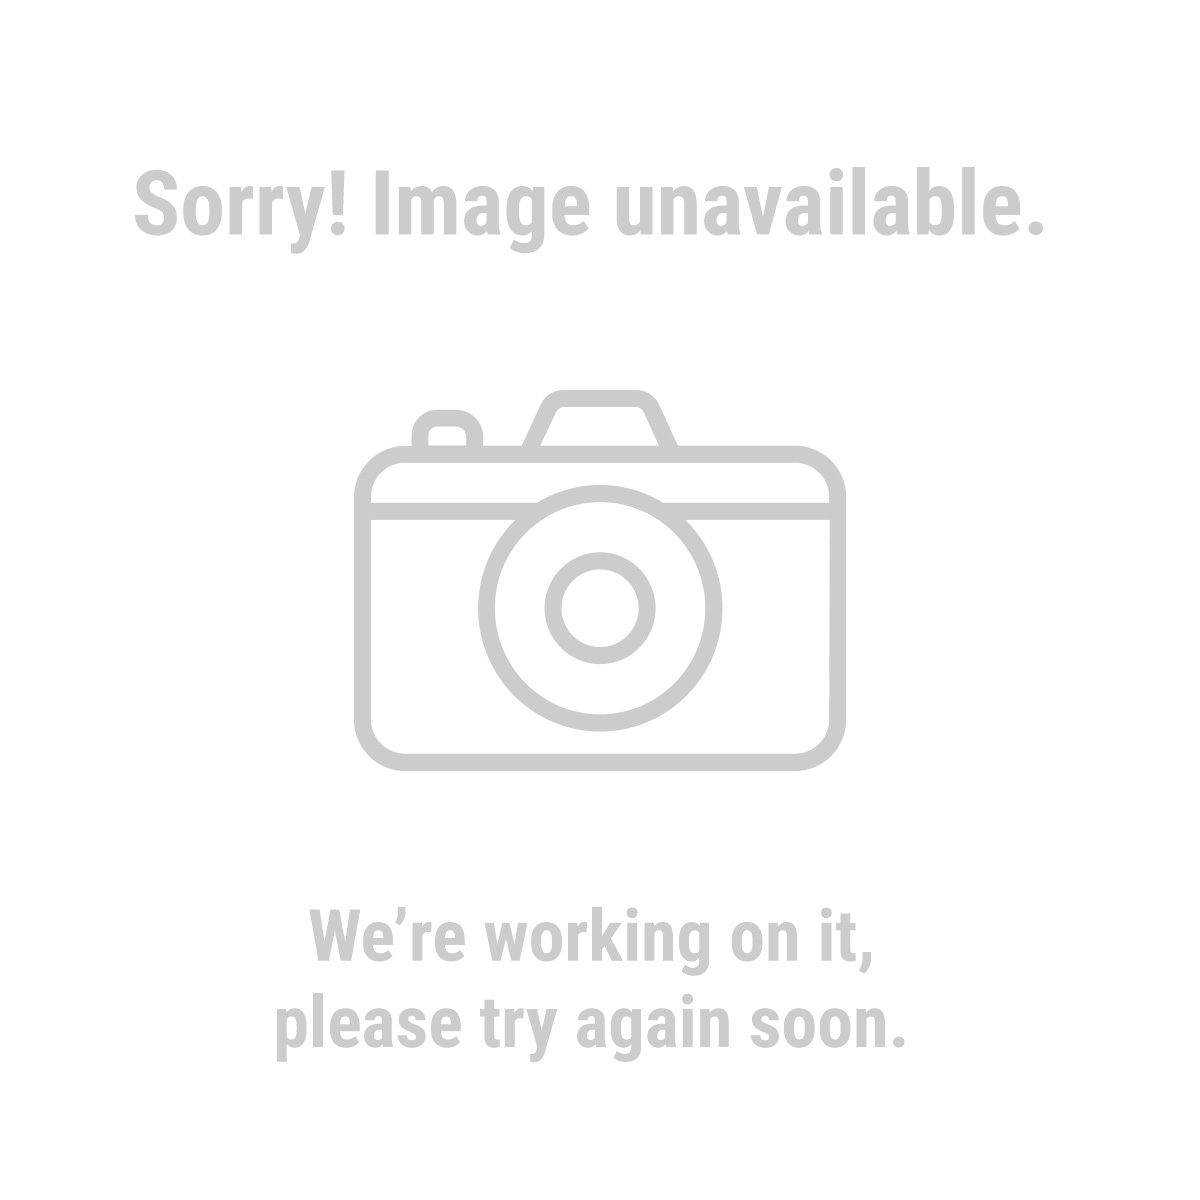 Central Pneumatic 68740 Portable Air Compressor, 2 Horsepower, 8 Gallon, 125 PSI